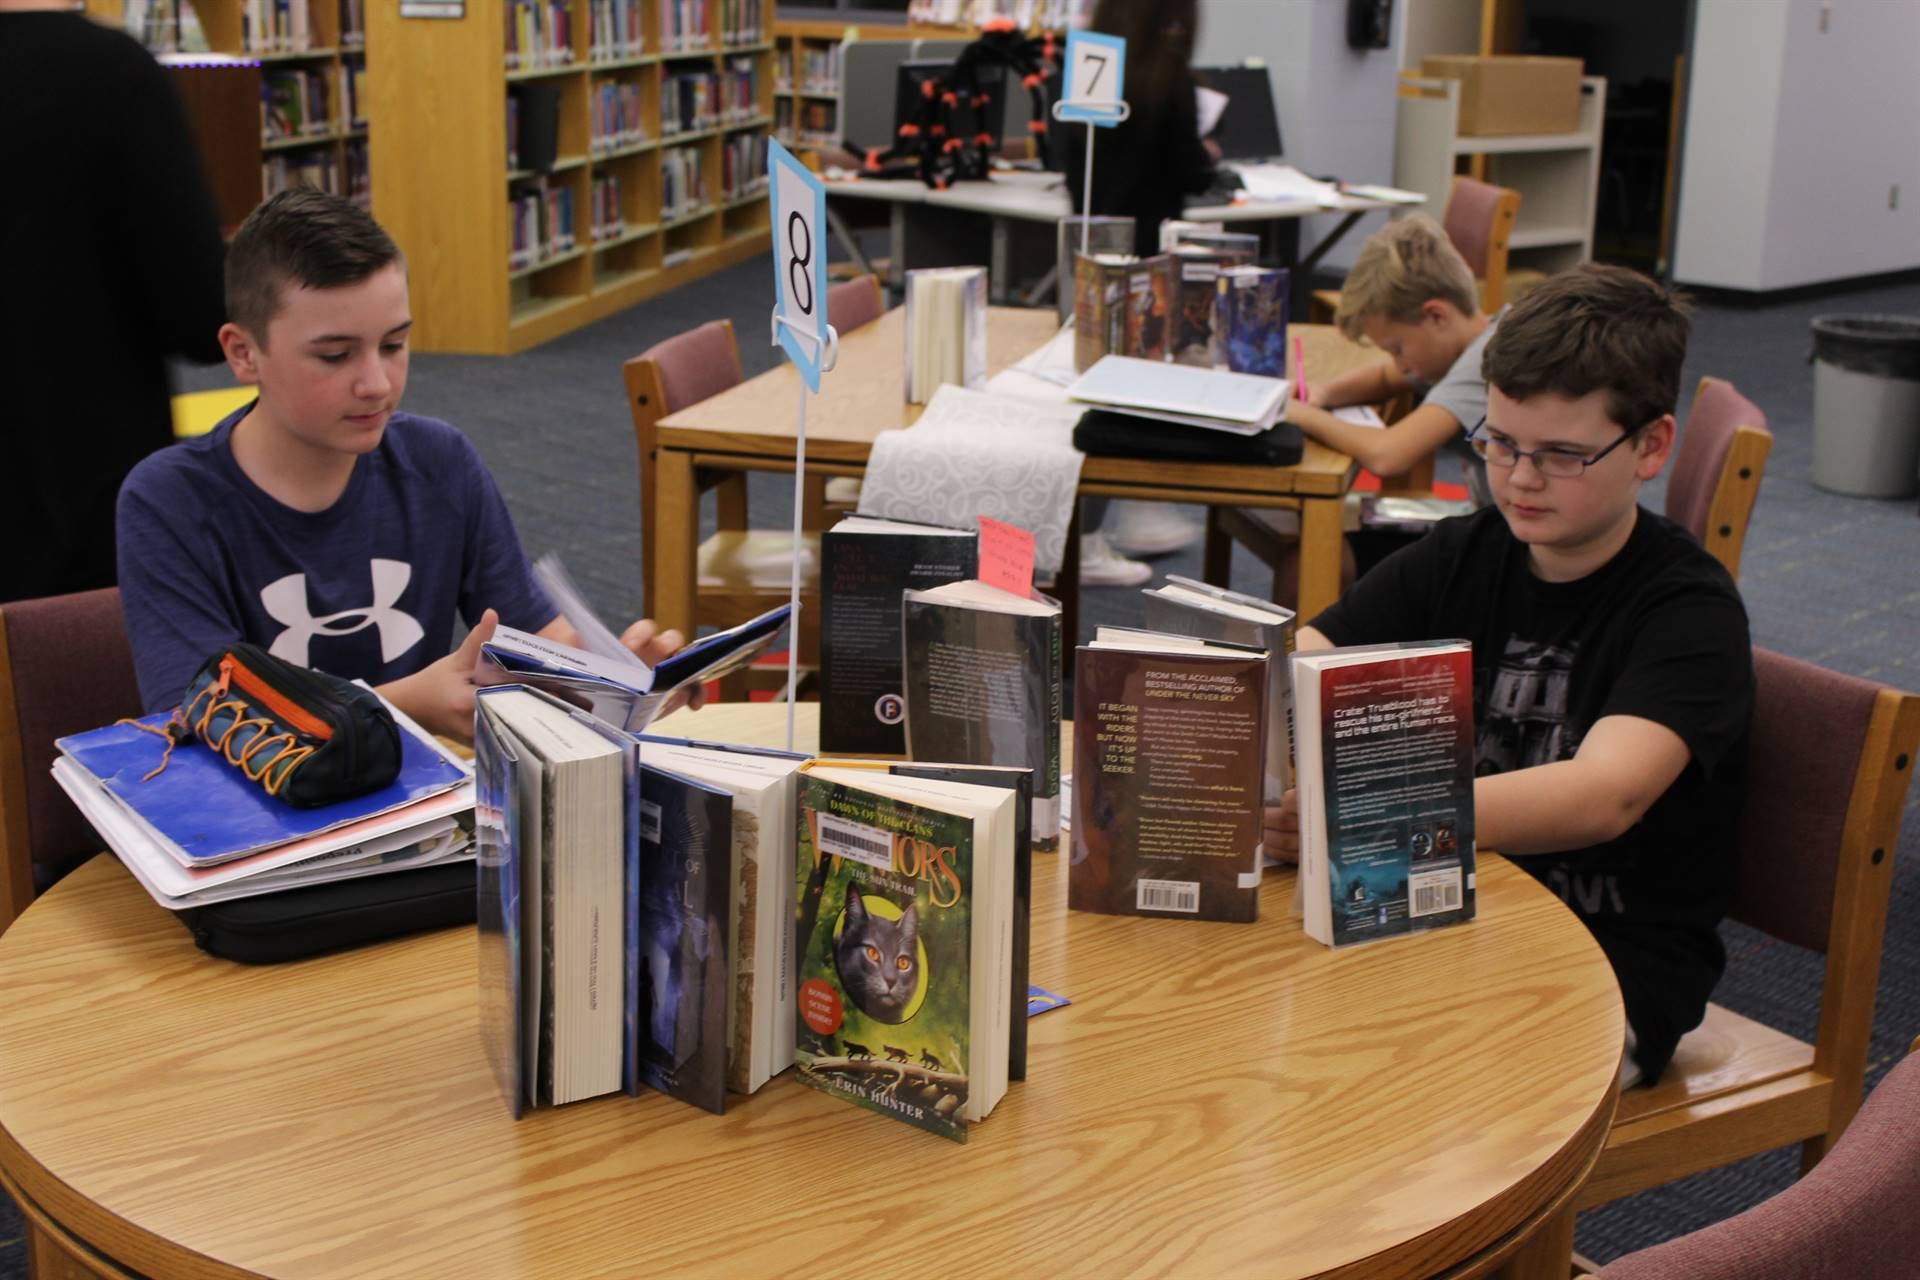 Students rate 10 books at the Book Tasting